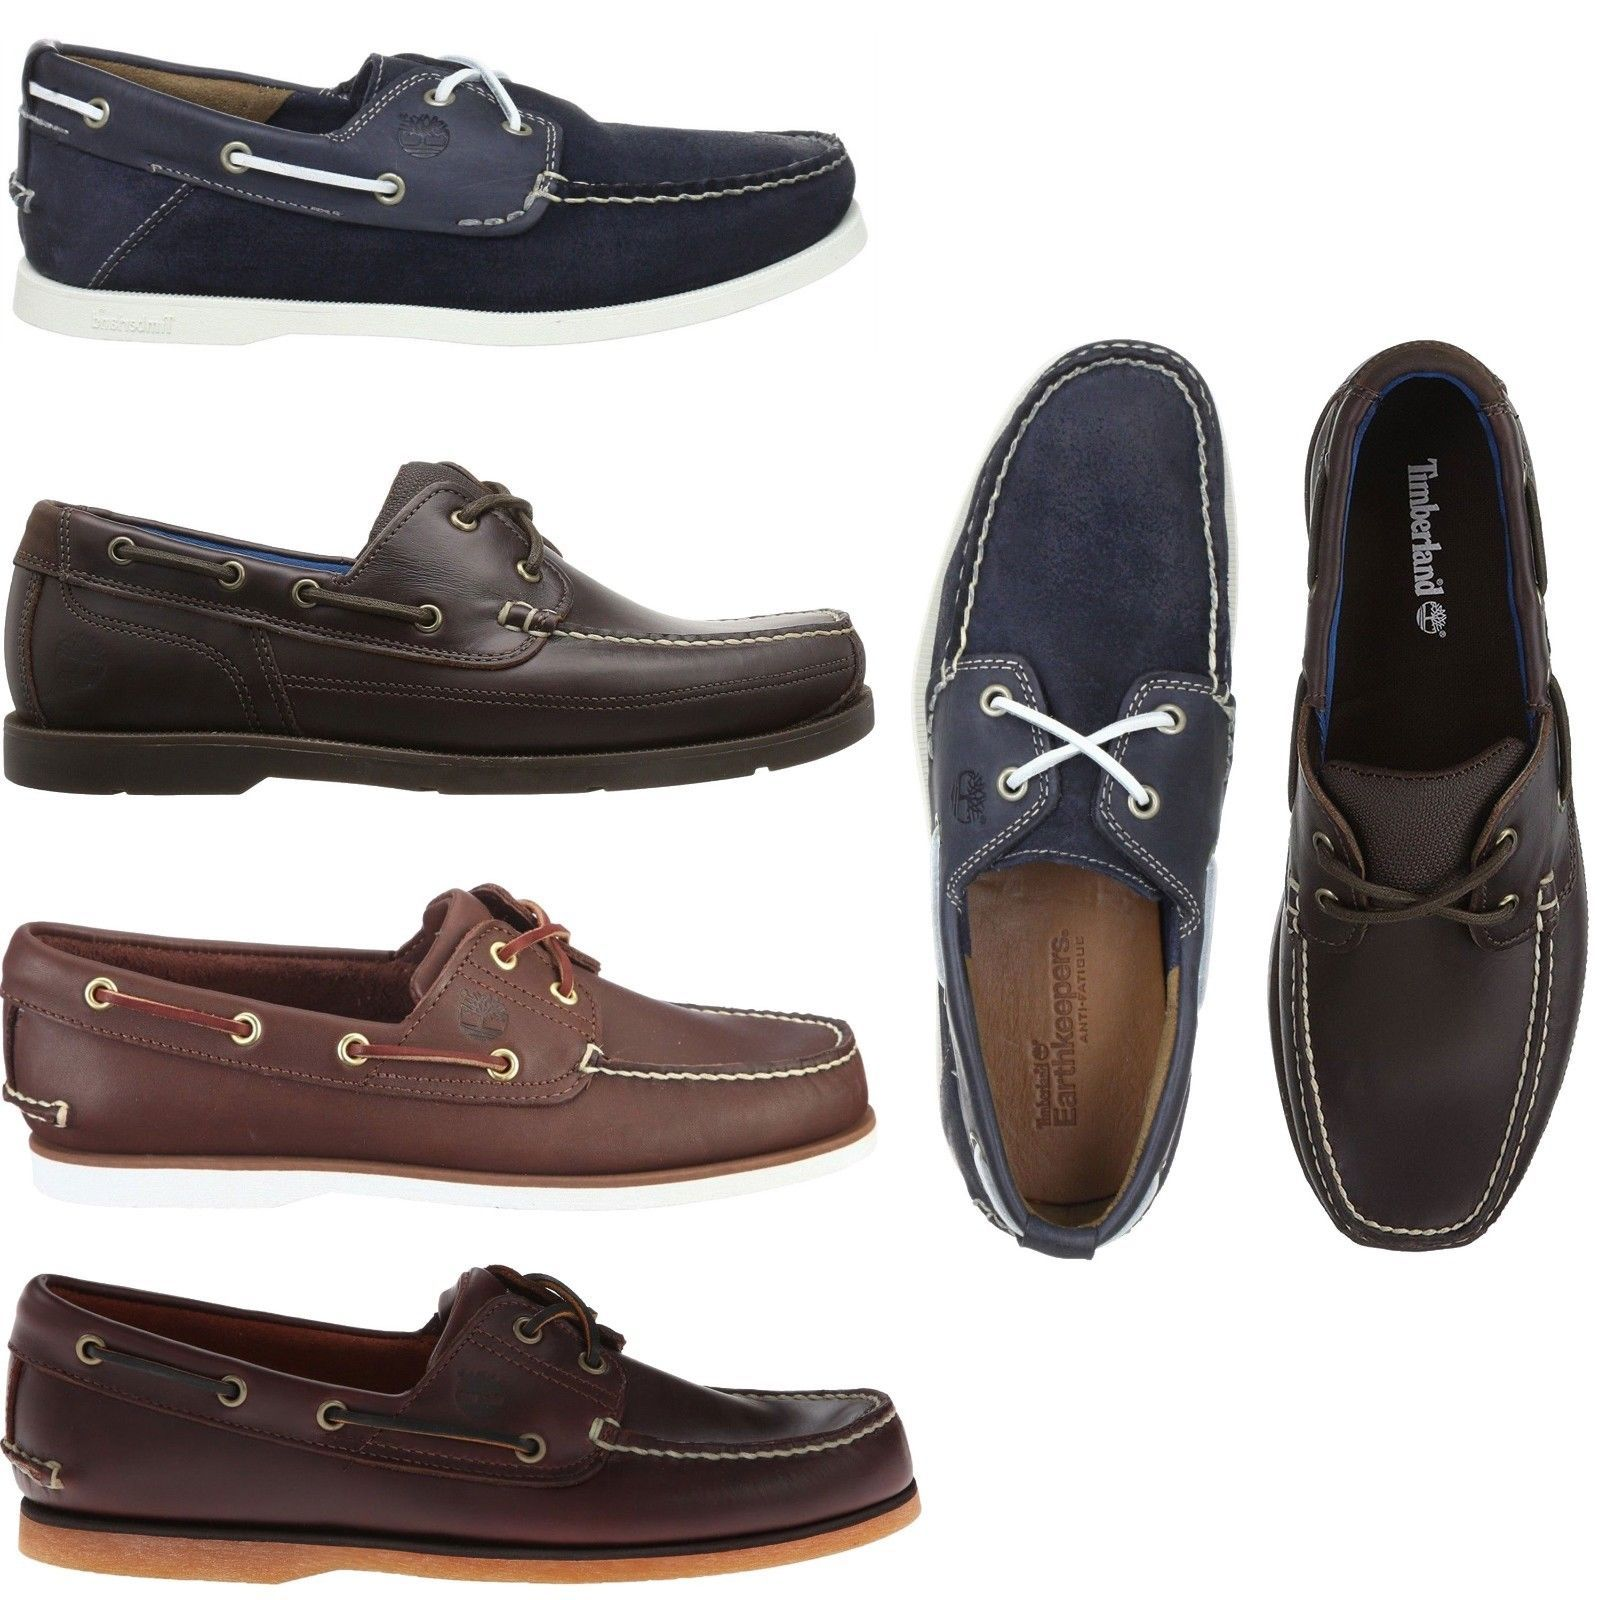 Contabilidad Eficacia Intervenir  Timberland Mens Classic 2 Eye Boat Shoes Casual Slip On Leather Loafers NEW  | eBay